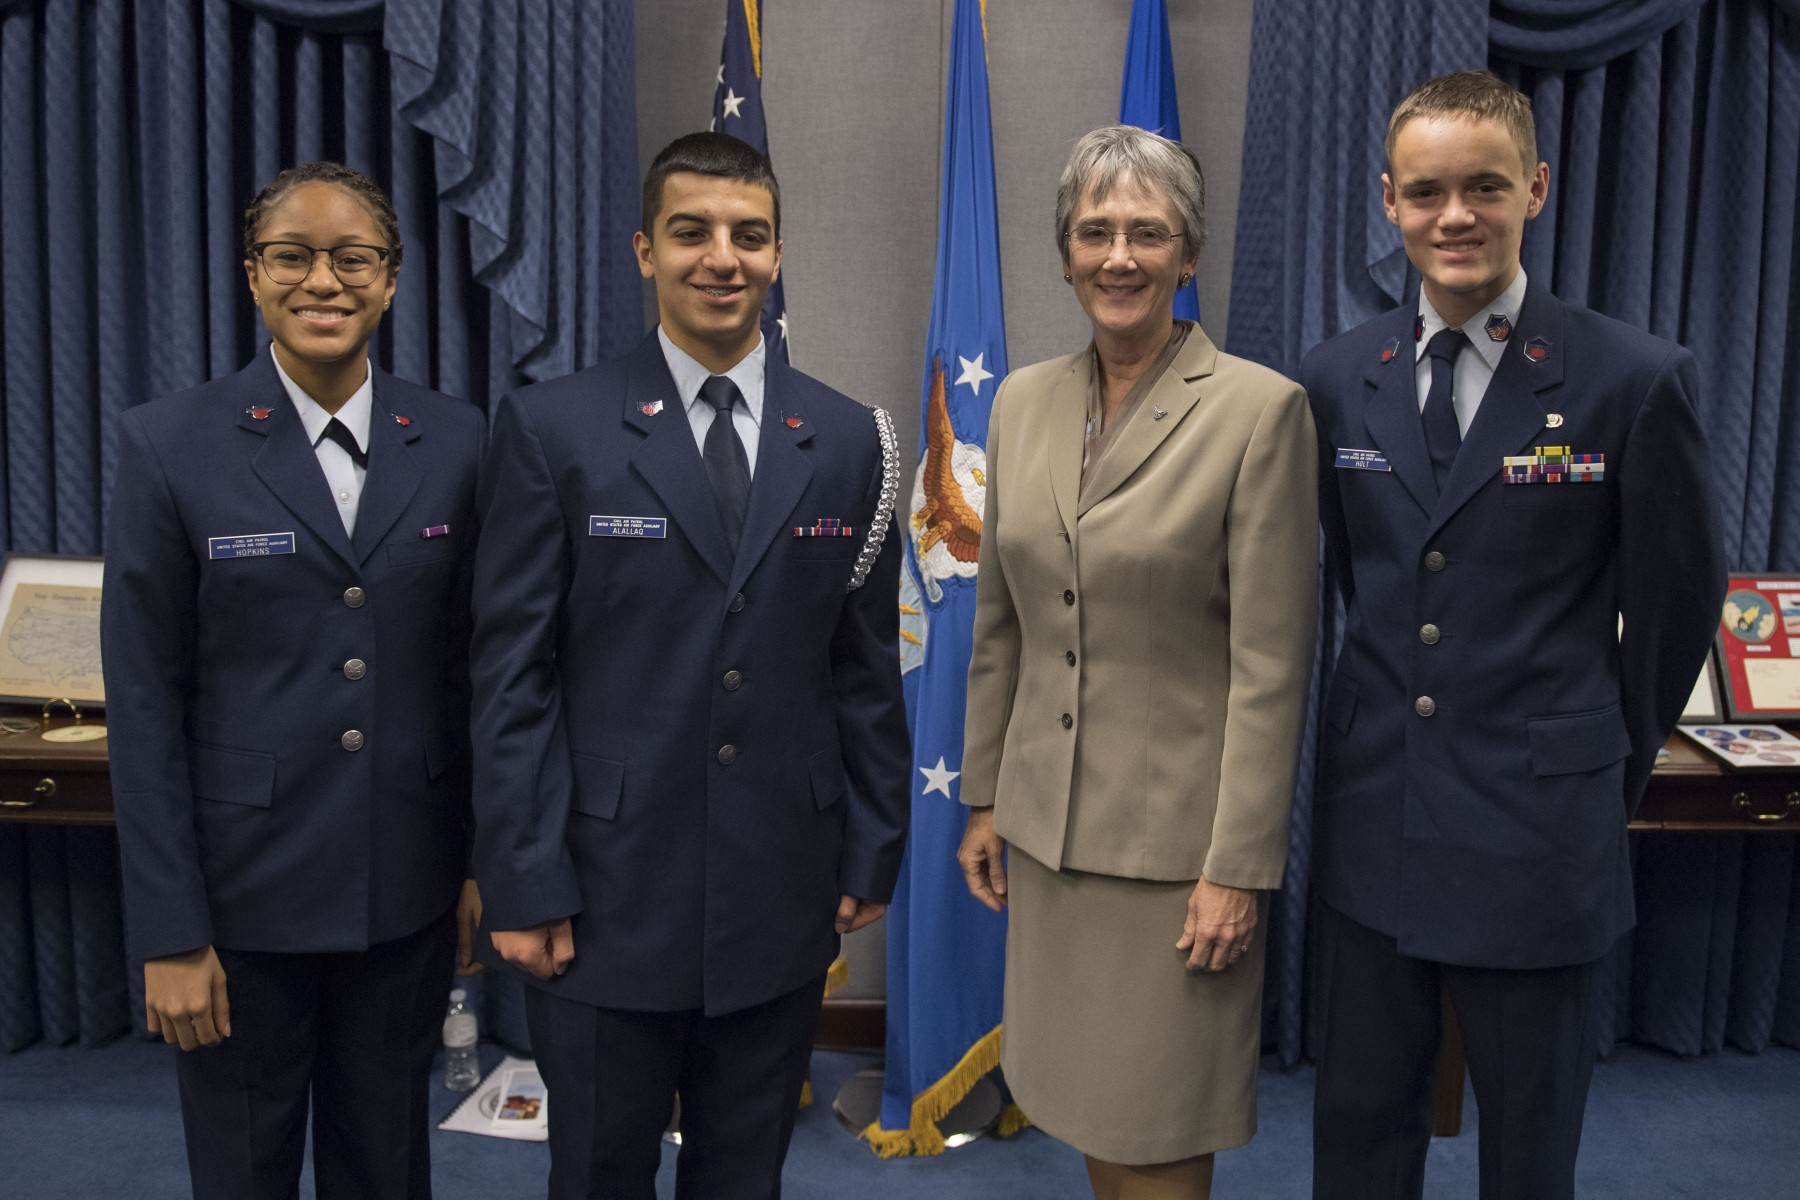 Secretary Wilson with cadets